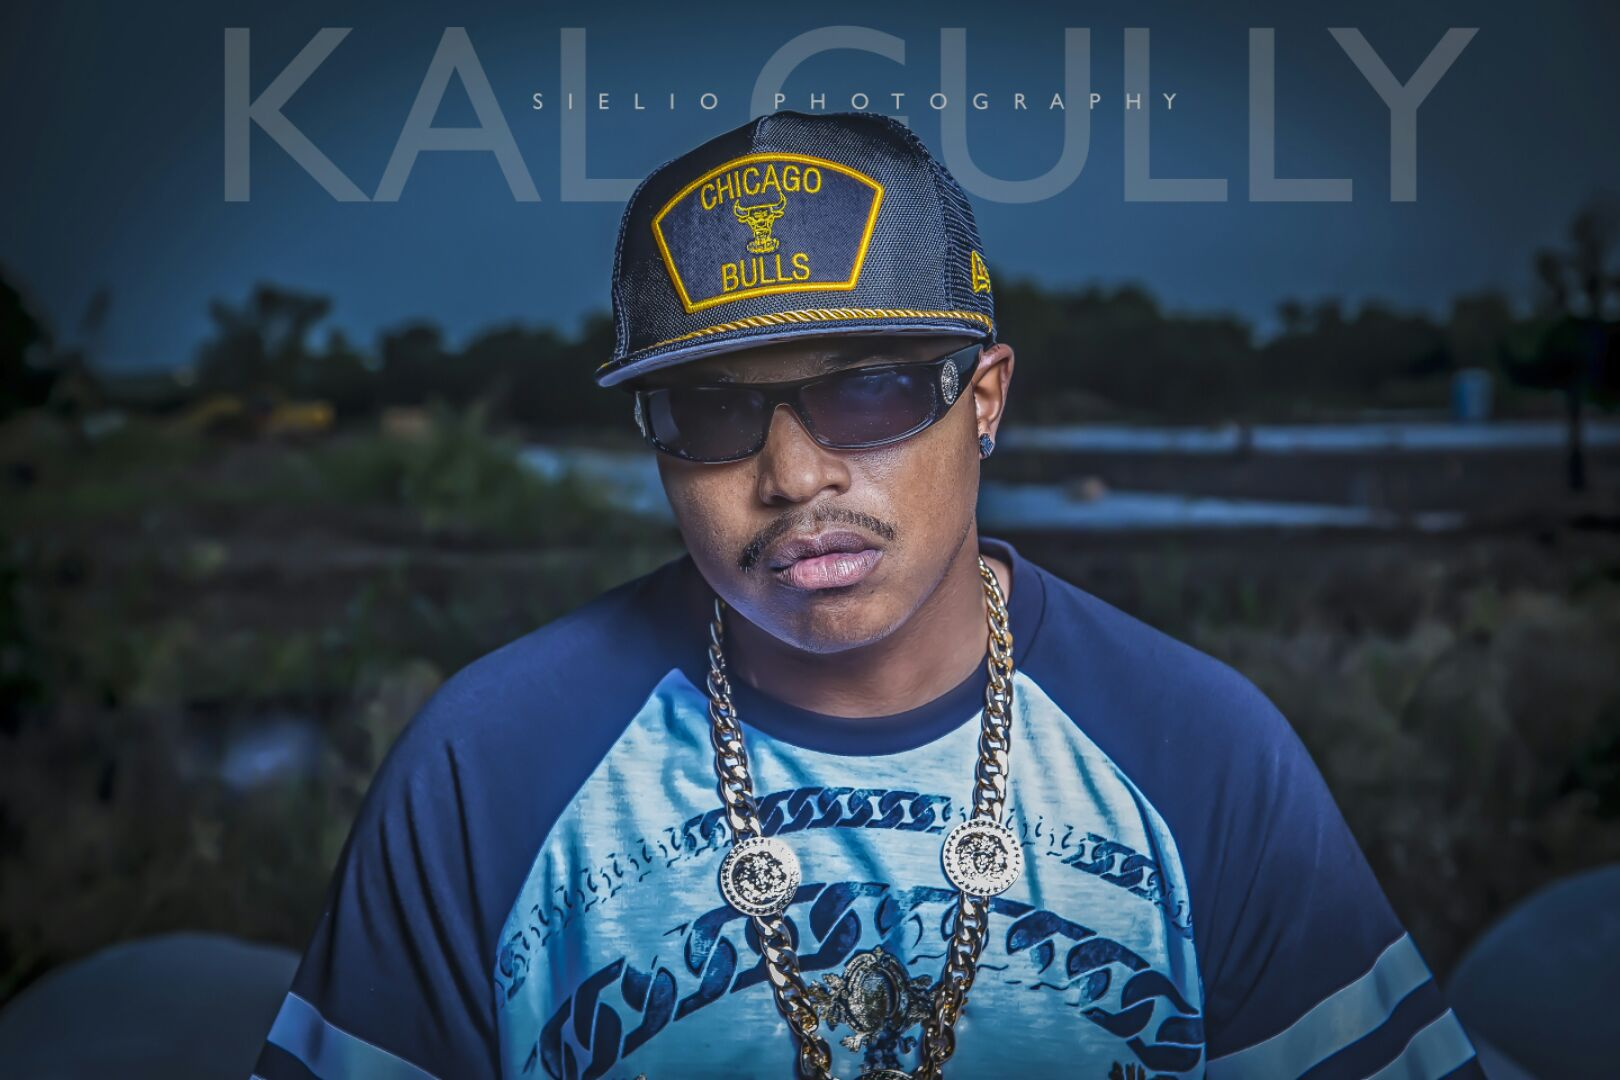 KAL GULLY